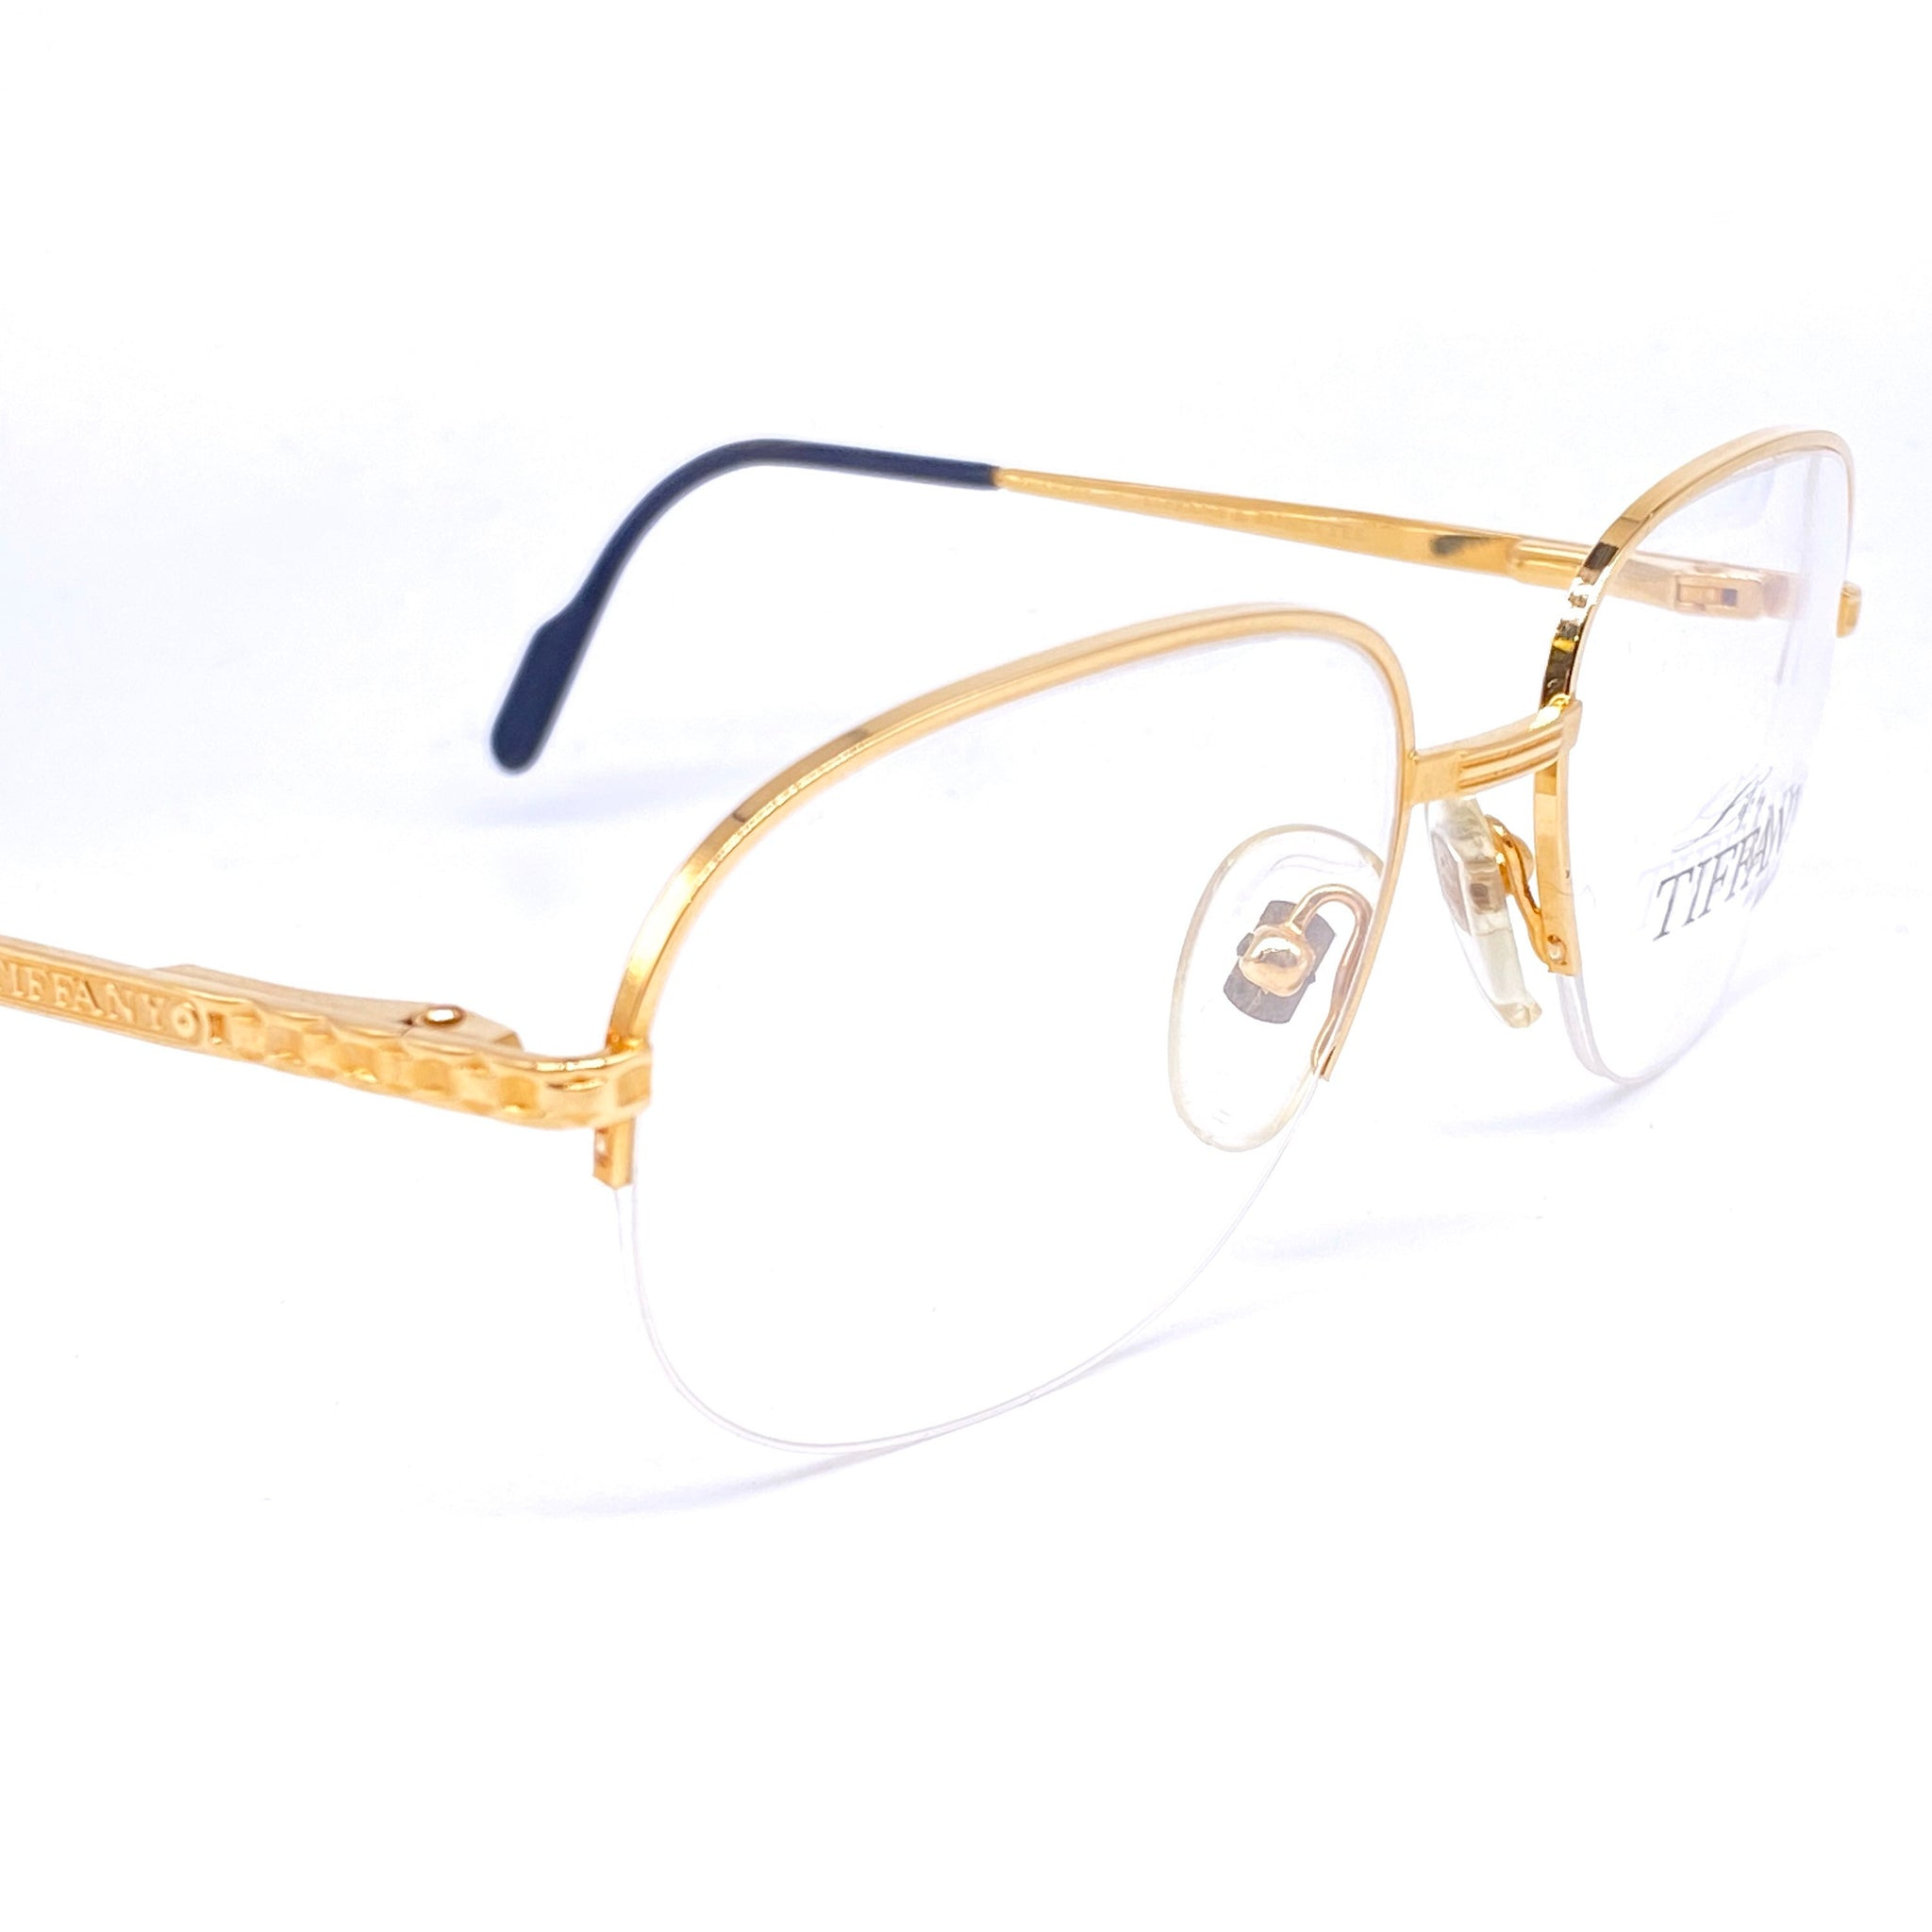 Tiffany T371 square half rimmed gold plated frames made in Italy, 1980s NOS - viceversashop